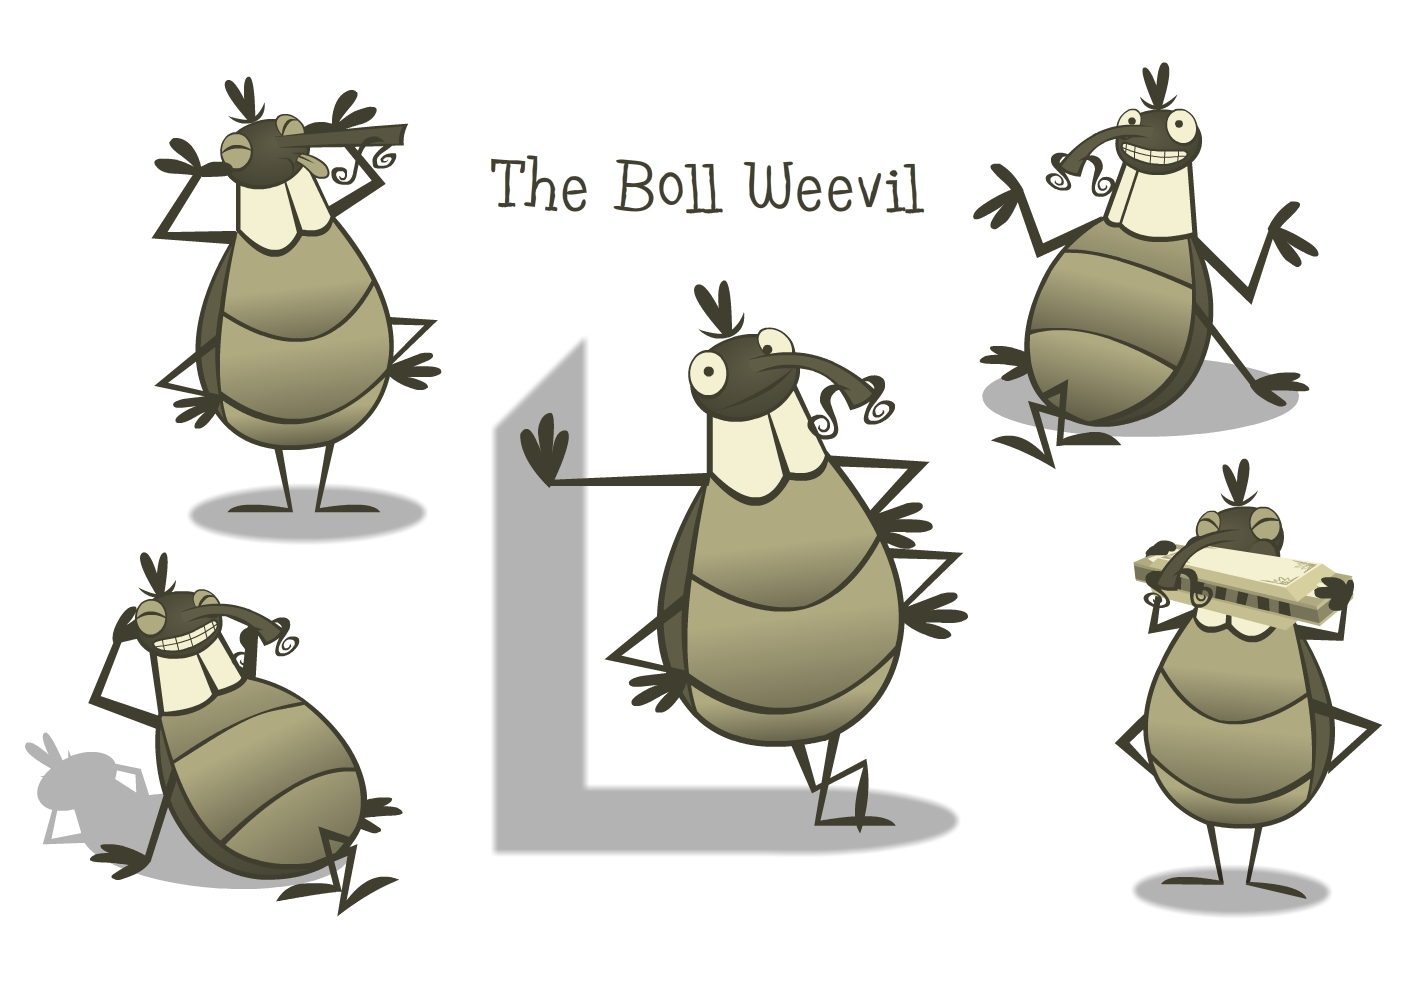 That pesky little eponymous Boll Weevil